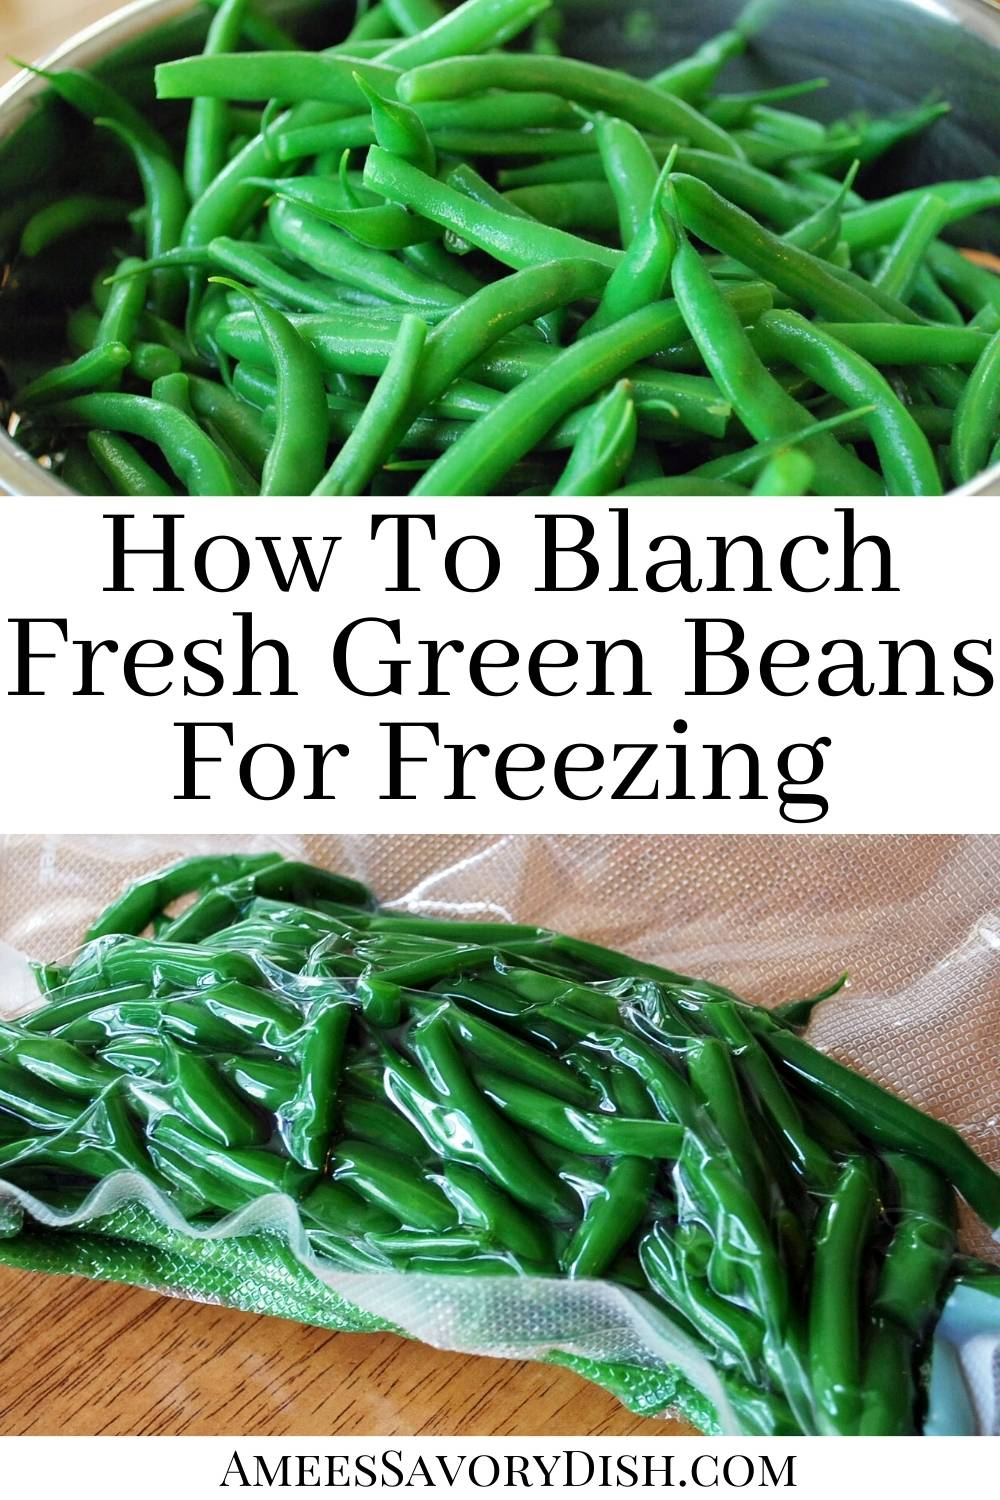 It's easy-breezy to blanch fresh green beans. I'm sharing a simple method of how to blanch fresh green beans and packaging them to freeze. #greenbeans #blanching via @Ameessavorydish